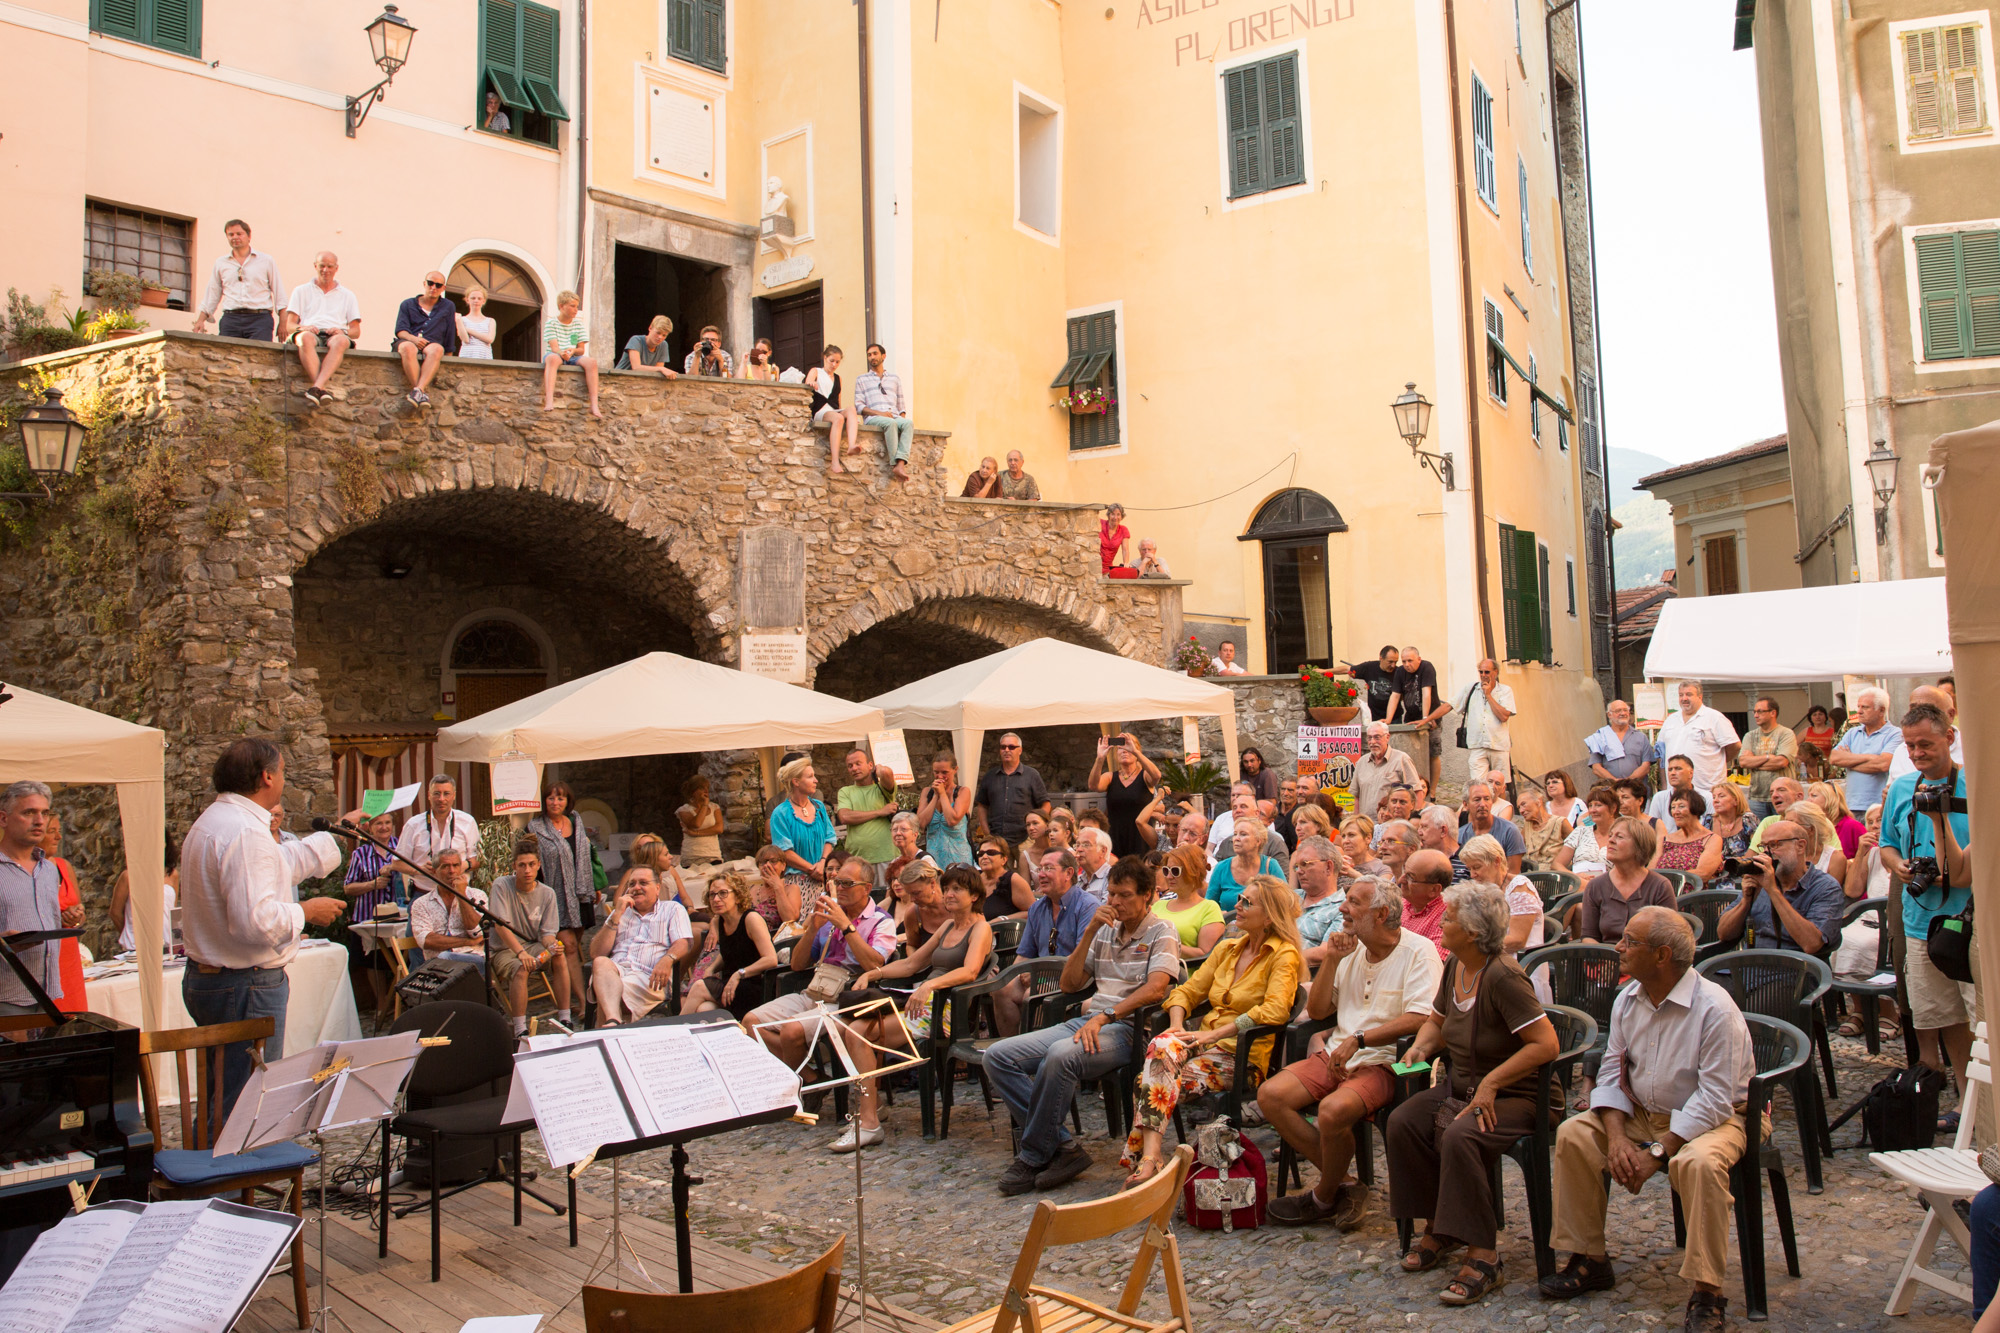 Concert at the piazza